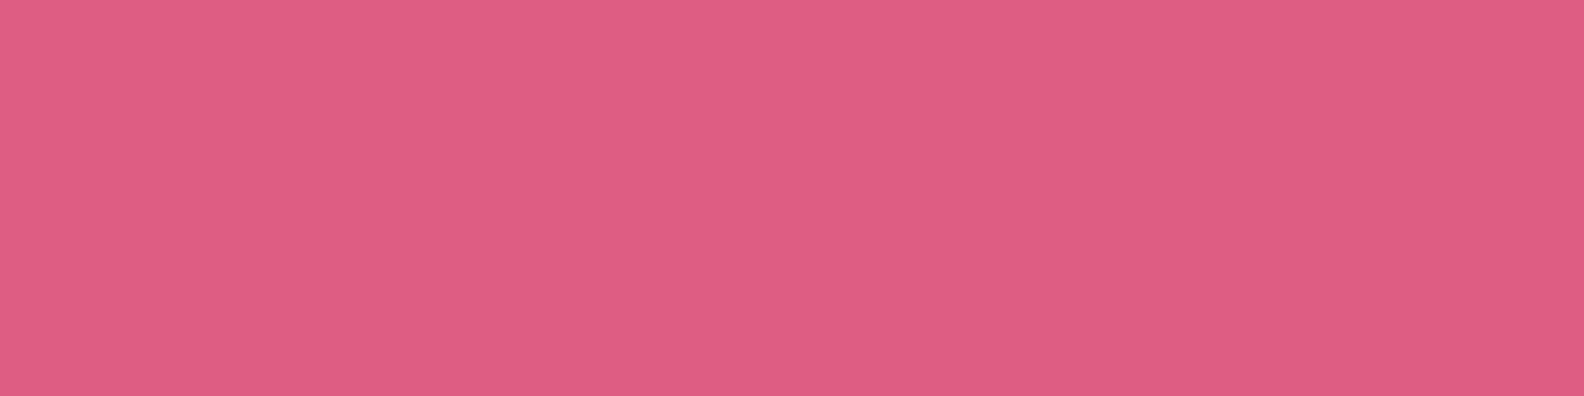 1584x396 Blush Solid Color Background